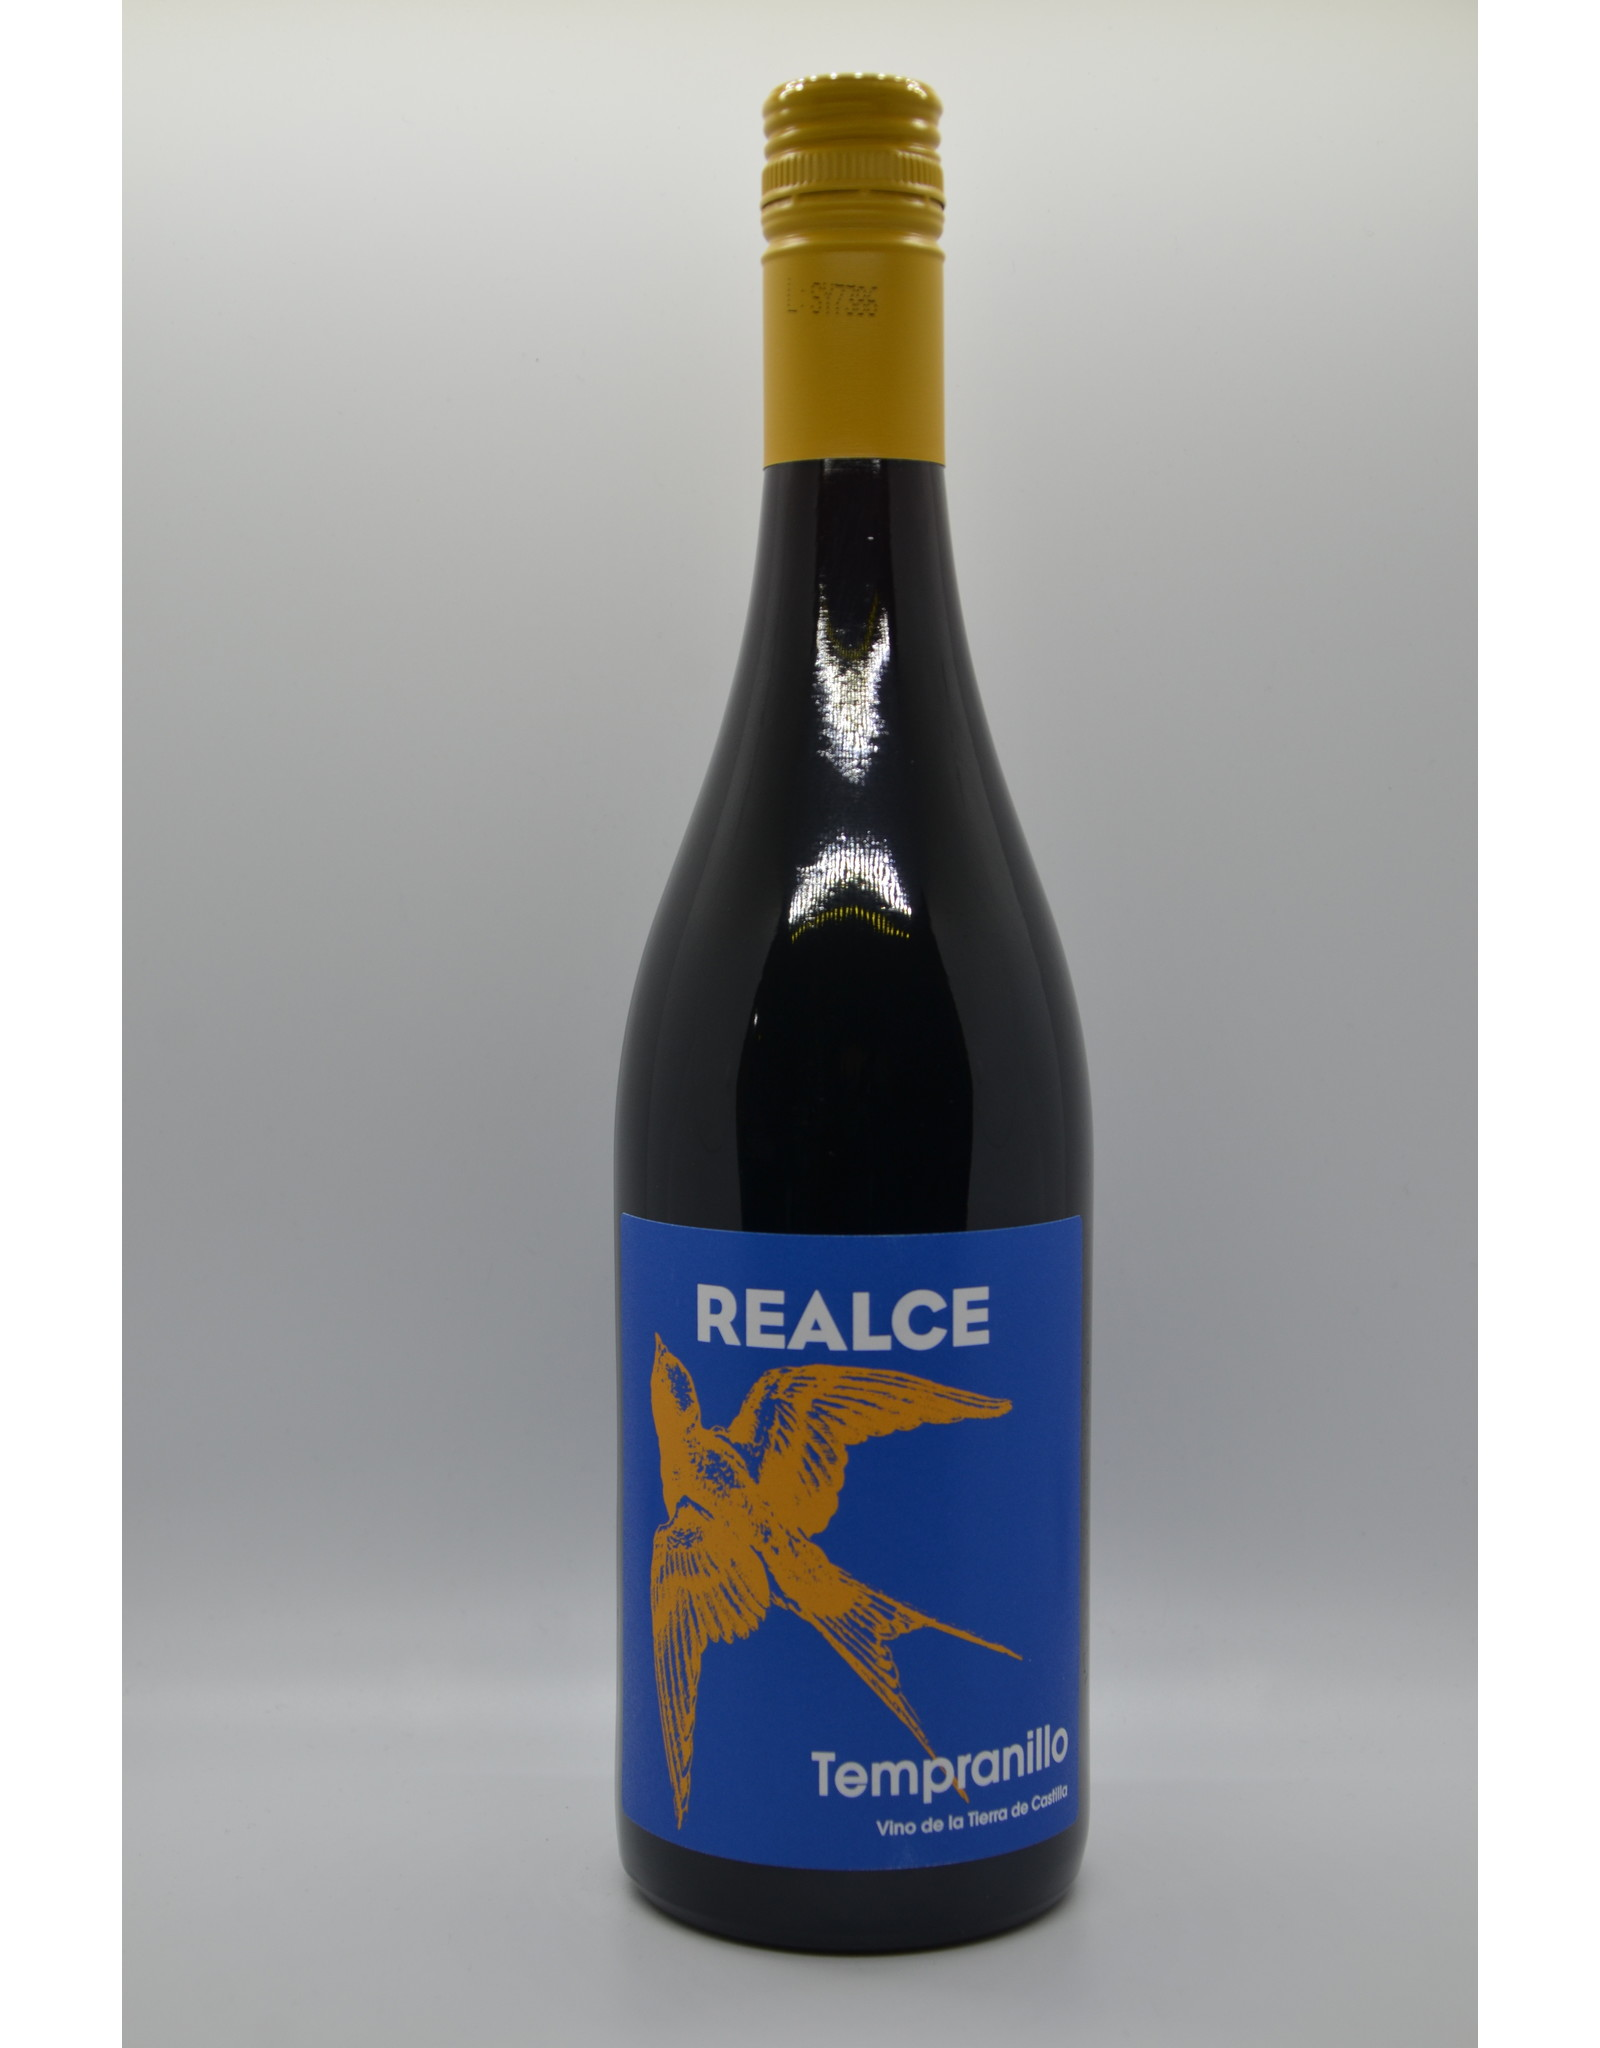 Spain Realce Tempranillo